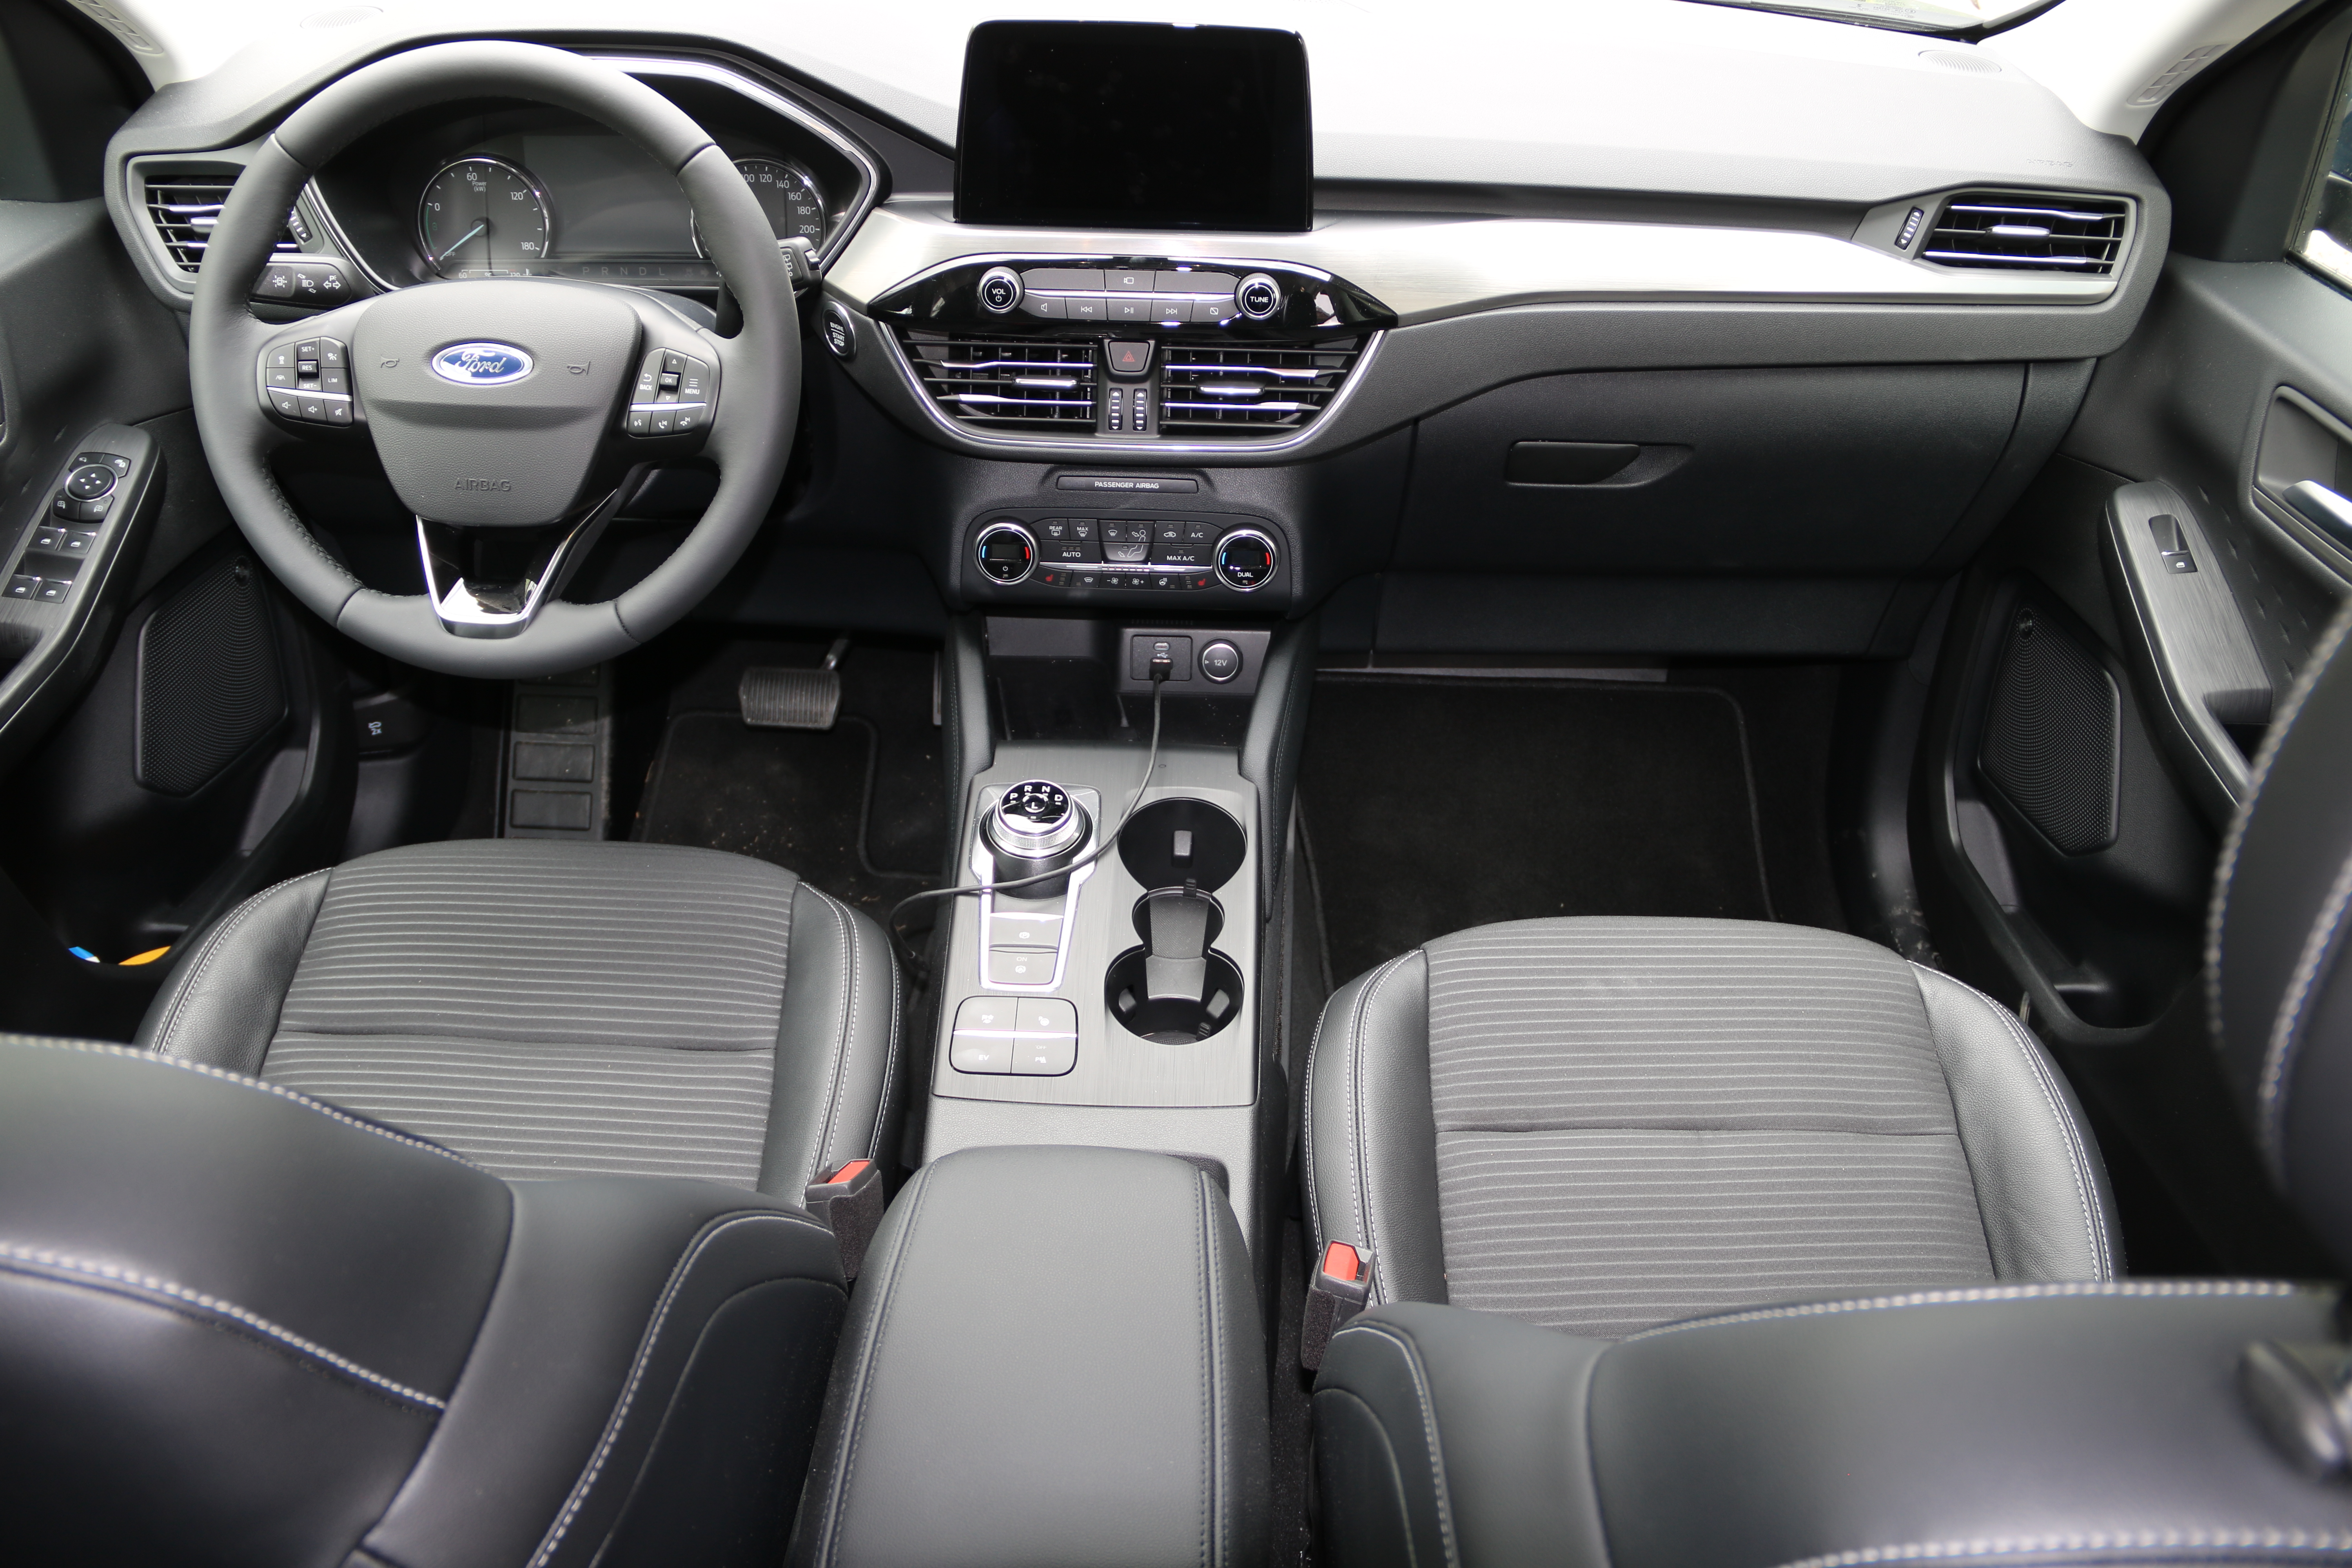 Ford Kuga PHEV Titanium front seats and dashboard